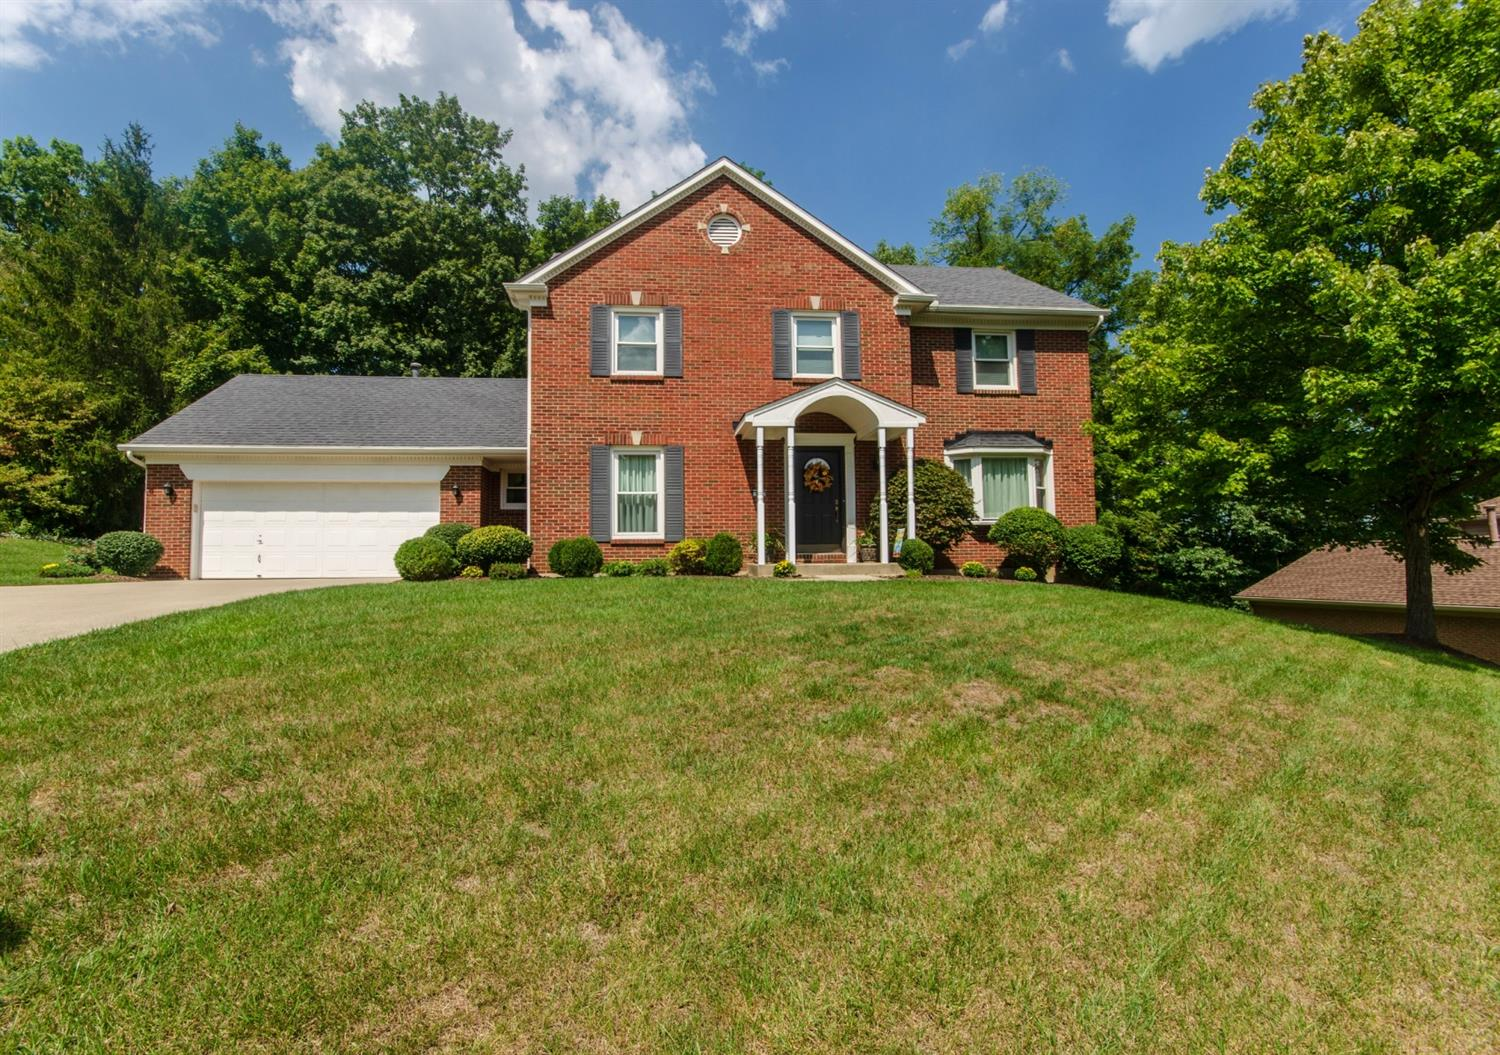 934 Surrey Wy Union Twp. (Clermont), OH